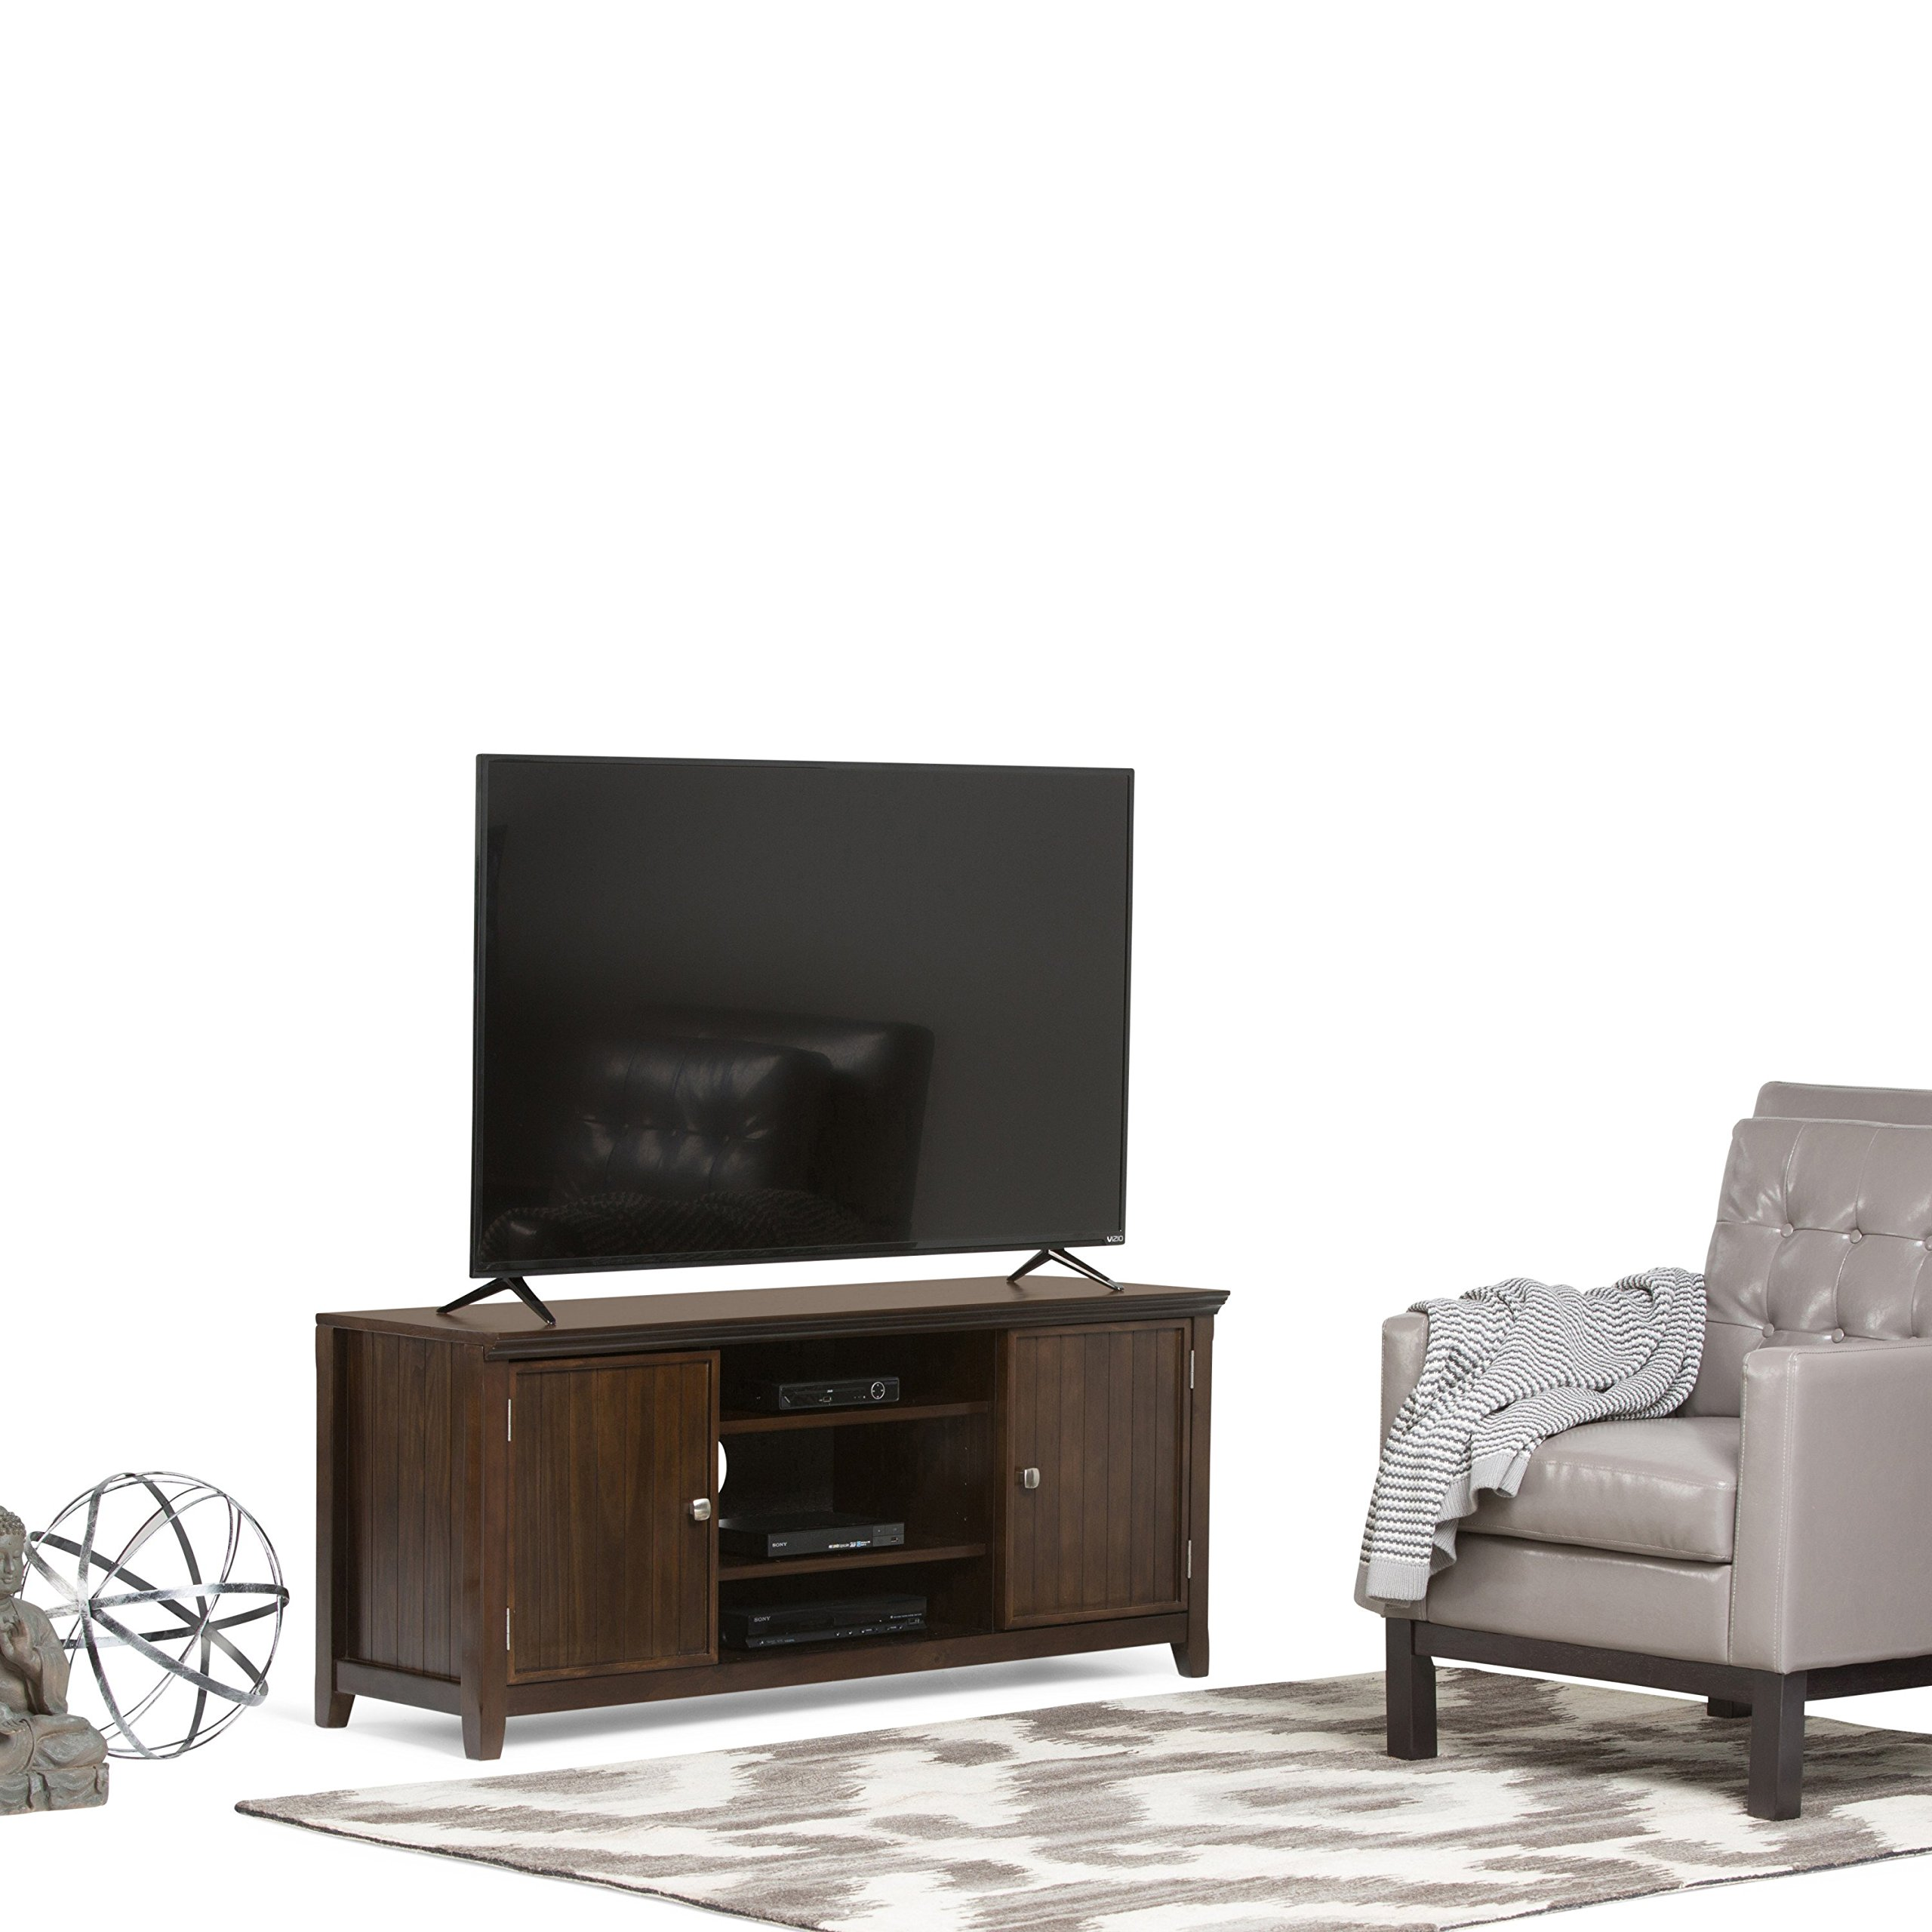 Simpli Home Acadian Solid Wood TV Media Stand for TVs up to 60'', Rich Tobacco Brown by Simpli Home (Image #2)